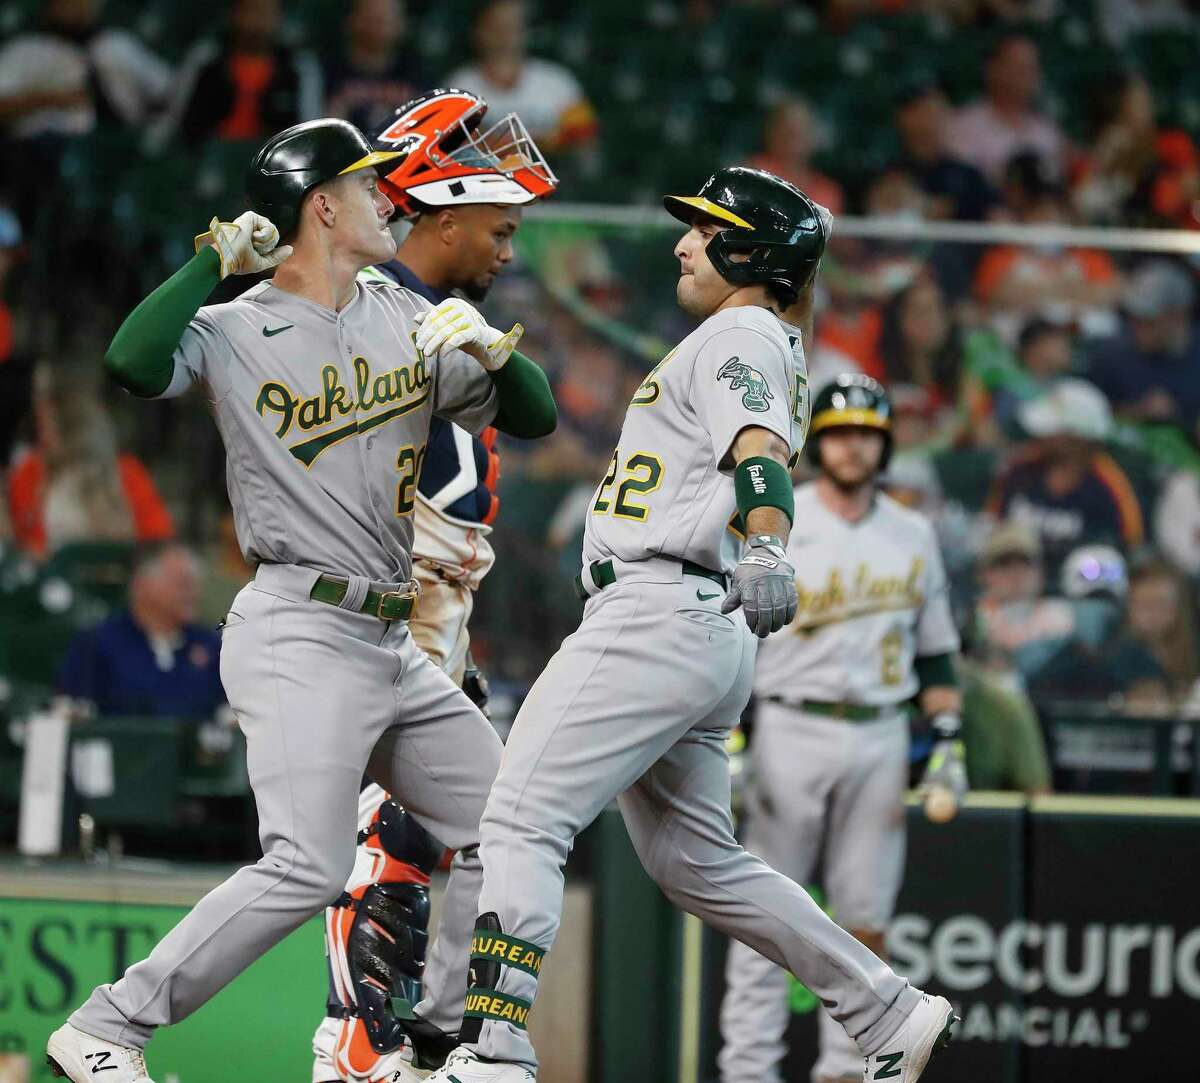 Oakland Athletics Ramon Laureano (22) and Mark Canha (20) celebrate Laureano's two-run home run off of Houston Astros starting pitcher Jose Urquidy during the fifth inning of an MLB baseball game at Minute Maid Park, in Houston, Saturday, April 10, 2021.